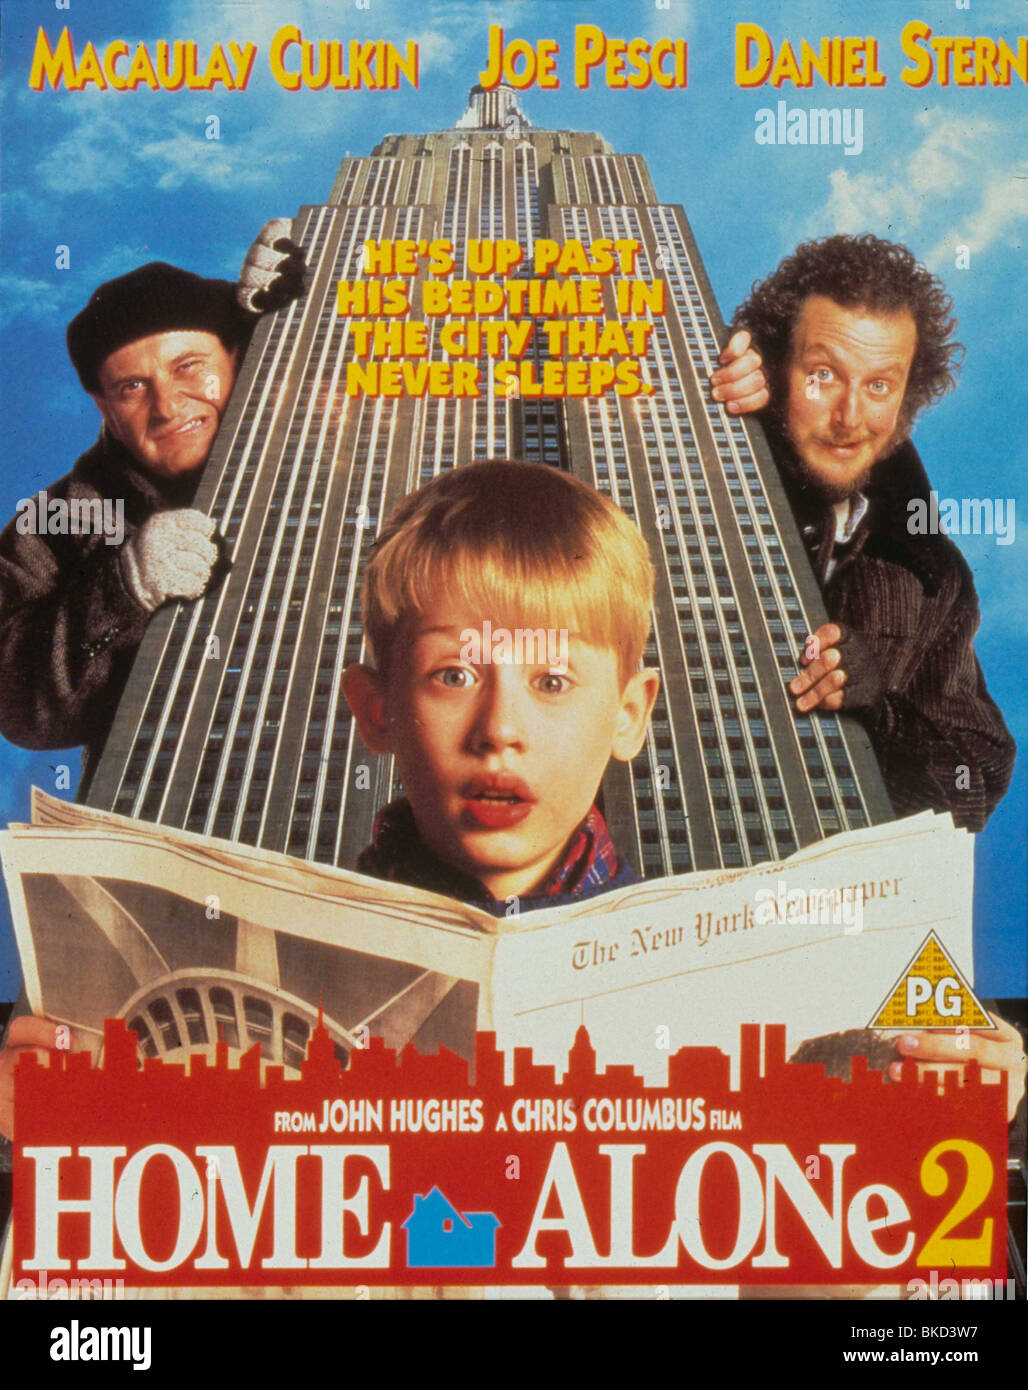 home alone 2 lost in new york 1992 poster hm2 064 stock